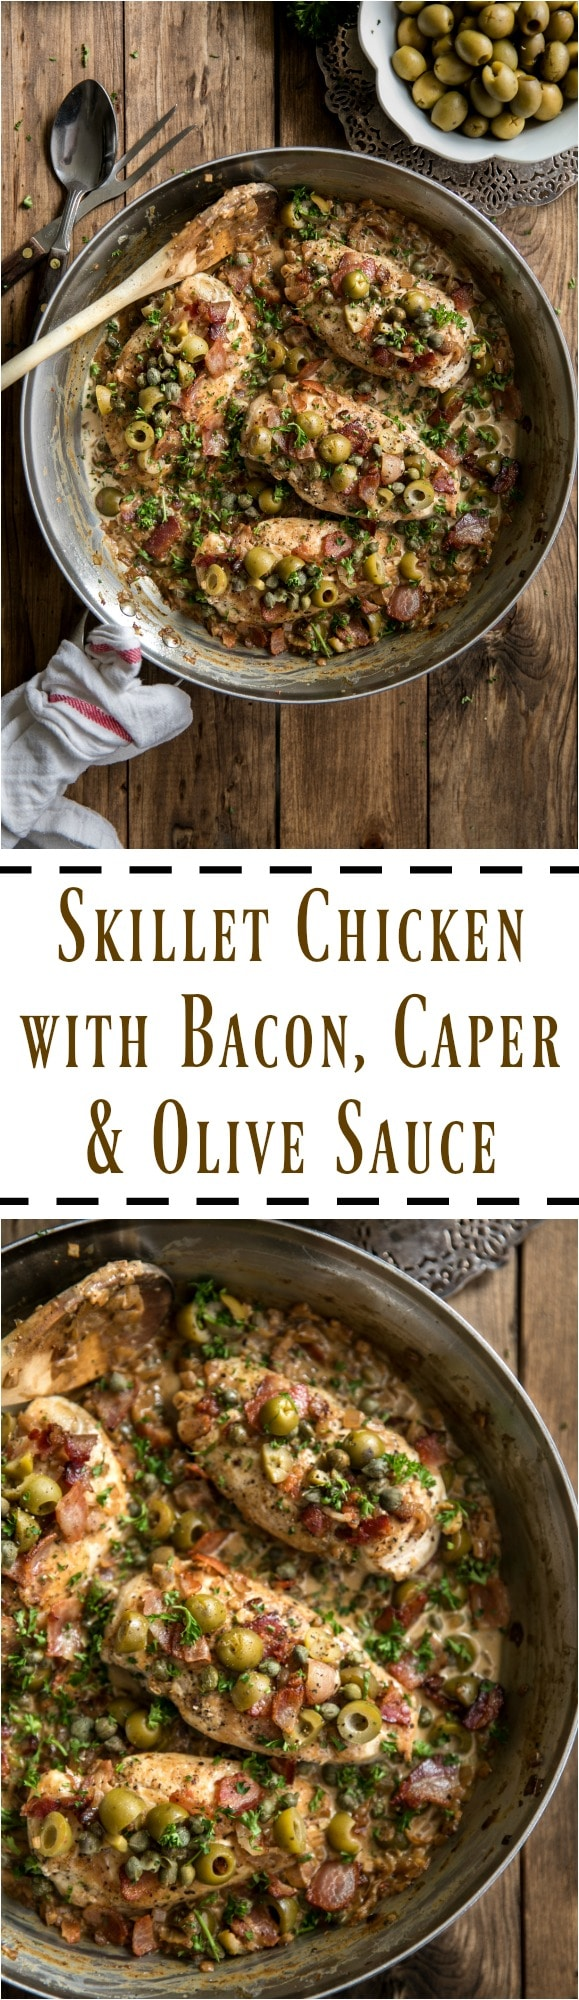 Skillet Chicken with Bacon, Caper and Olive Sauce via @theforkedspoon #skilletdinner #bacon #chicken #olives #easyrecipe #comfortfood #theforkedspoon